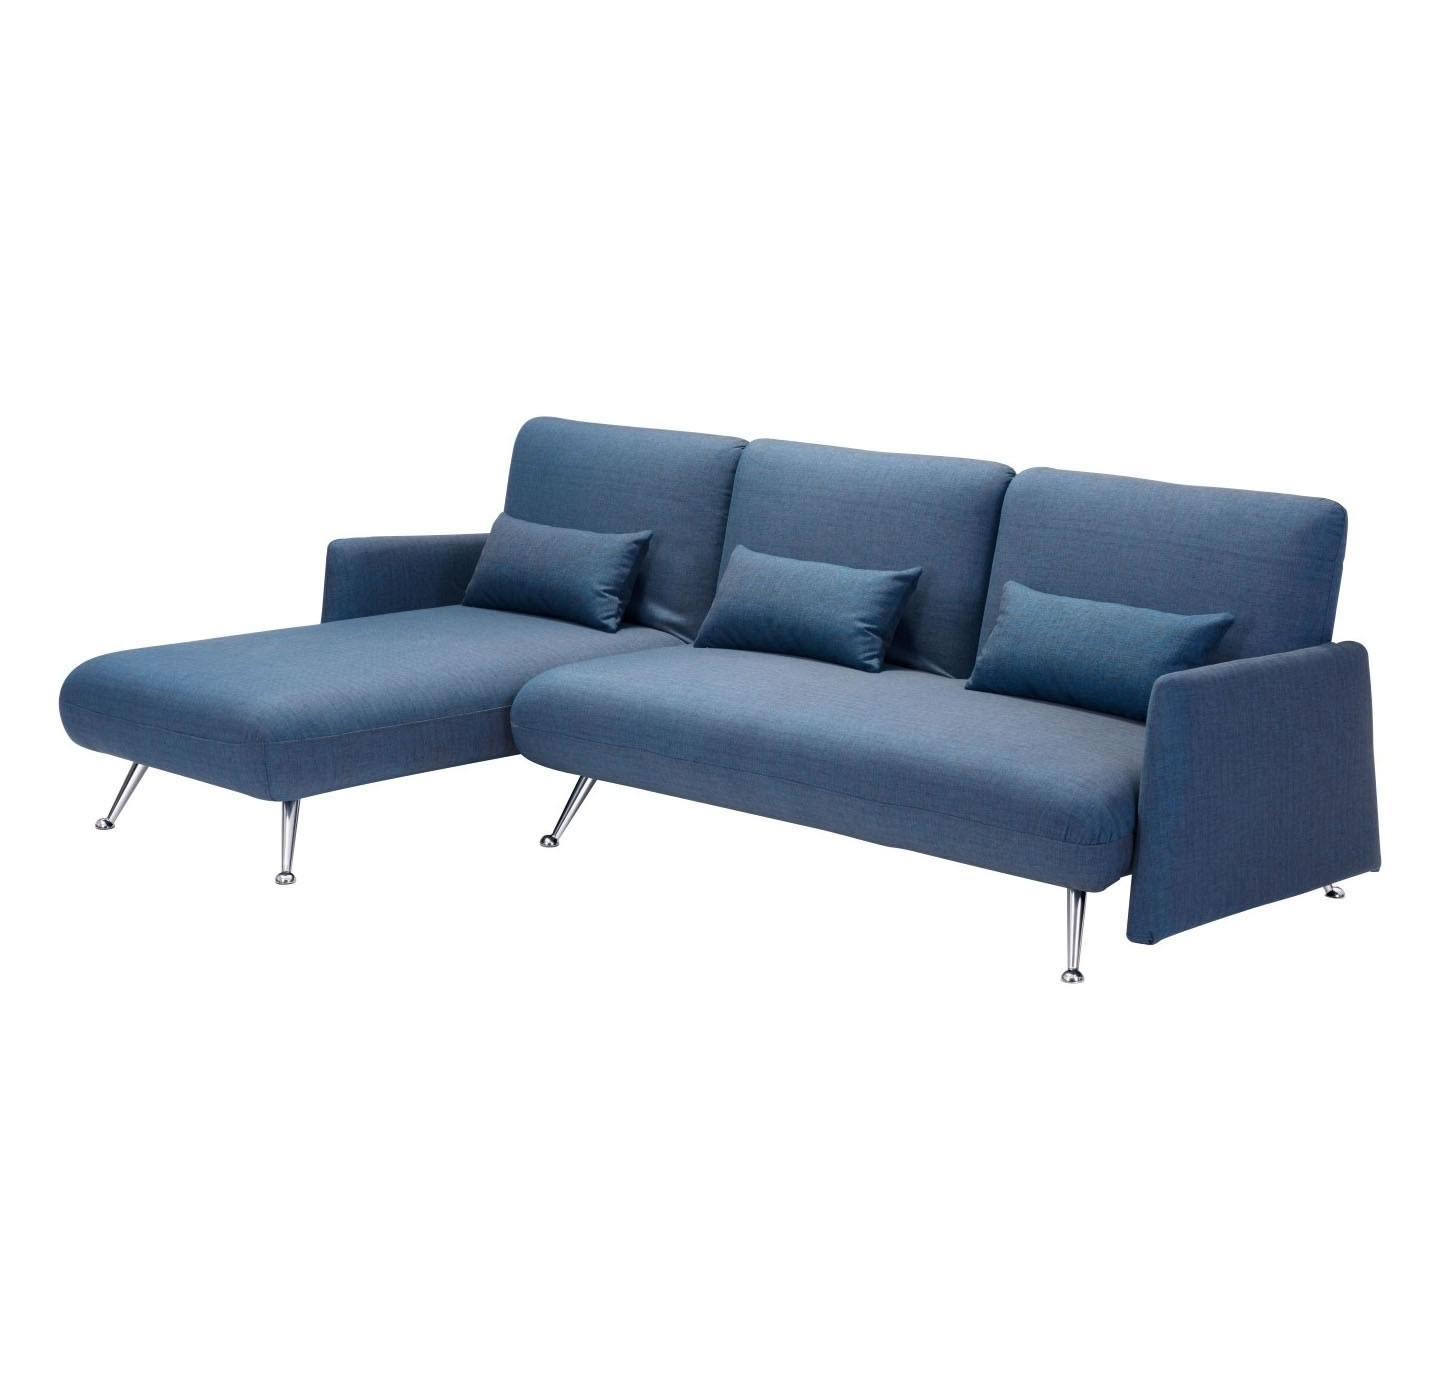 Popular Zuo Modern Bizard Sleeper Sectional Sofa (Cowboy Blue) – Disc Intended For Sectional Sofas In Canada (View 14 of 20)